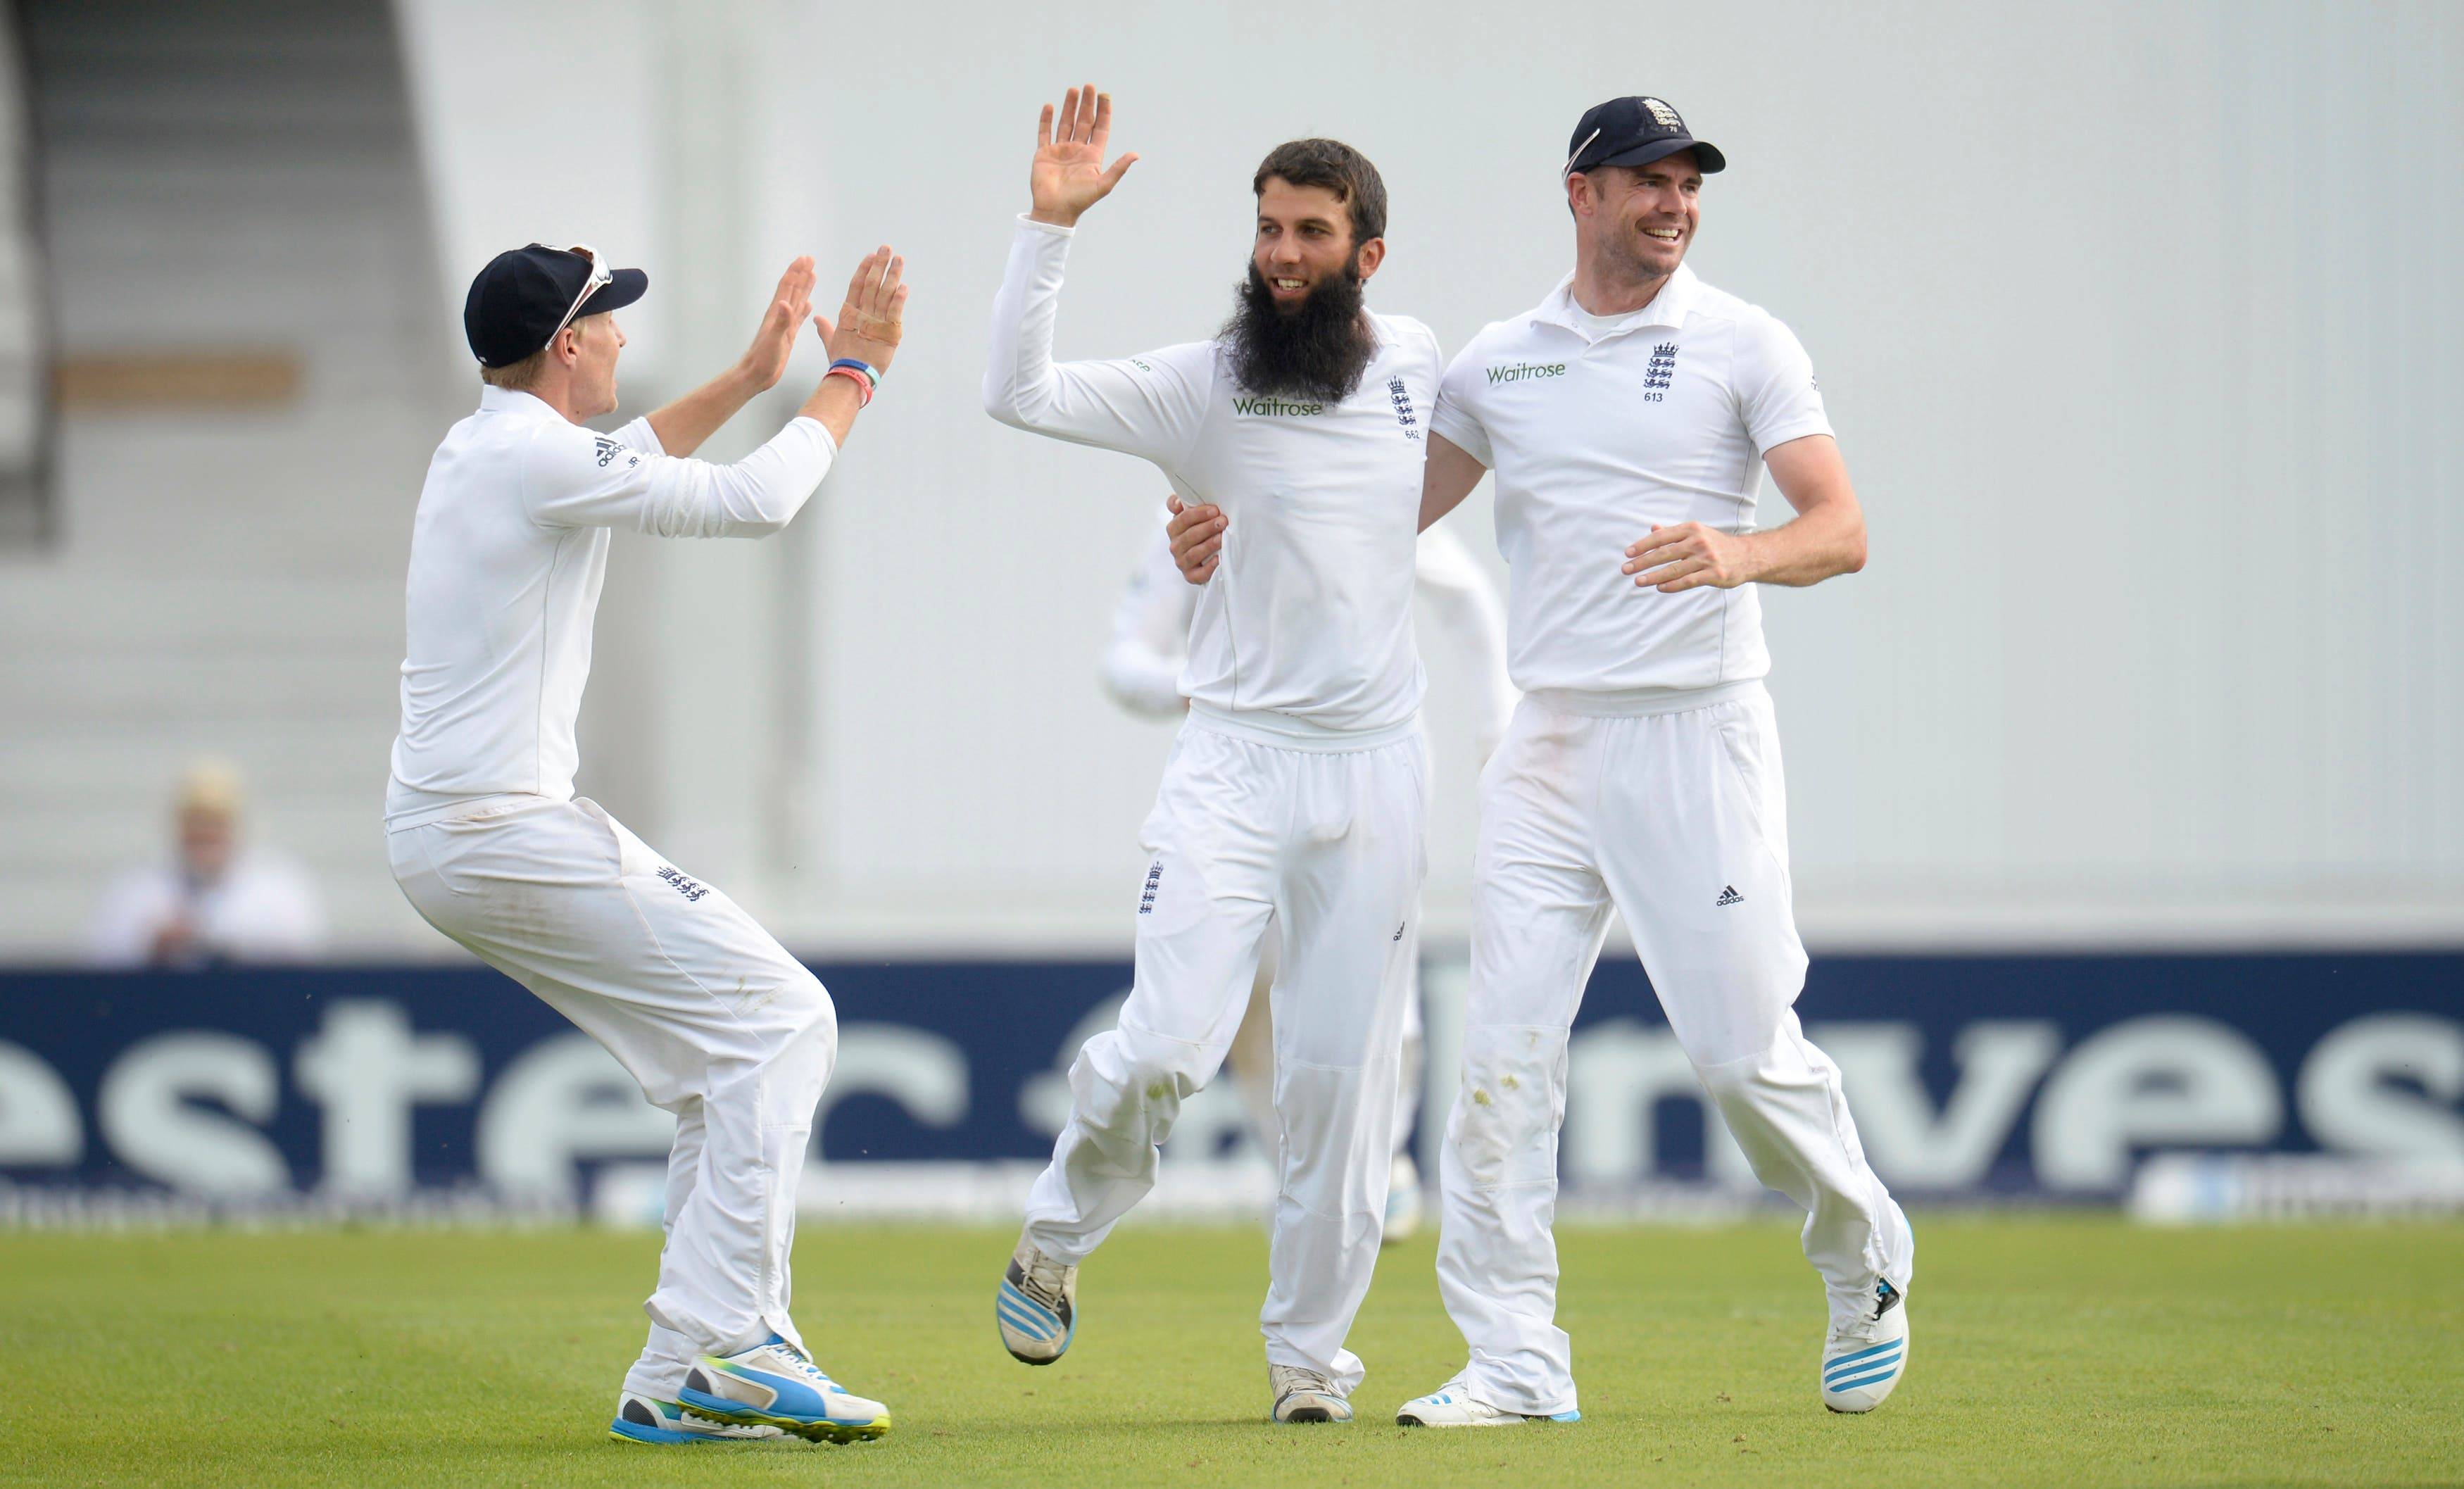 England's Moeen Ali celebrates with teammates James Anderson (R) and Joe Root (L) after dismissing Sri Lanka's Lahiru Thirimanne during the second cricket test match at Headingley cricket ground in Leeds, England June 22, 2014. (Reuters)